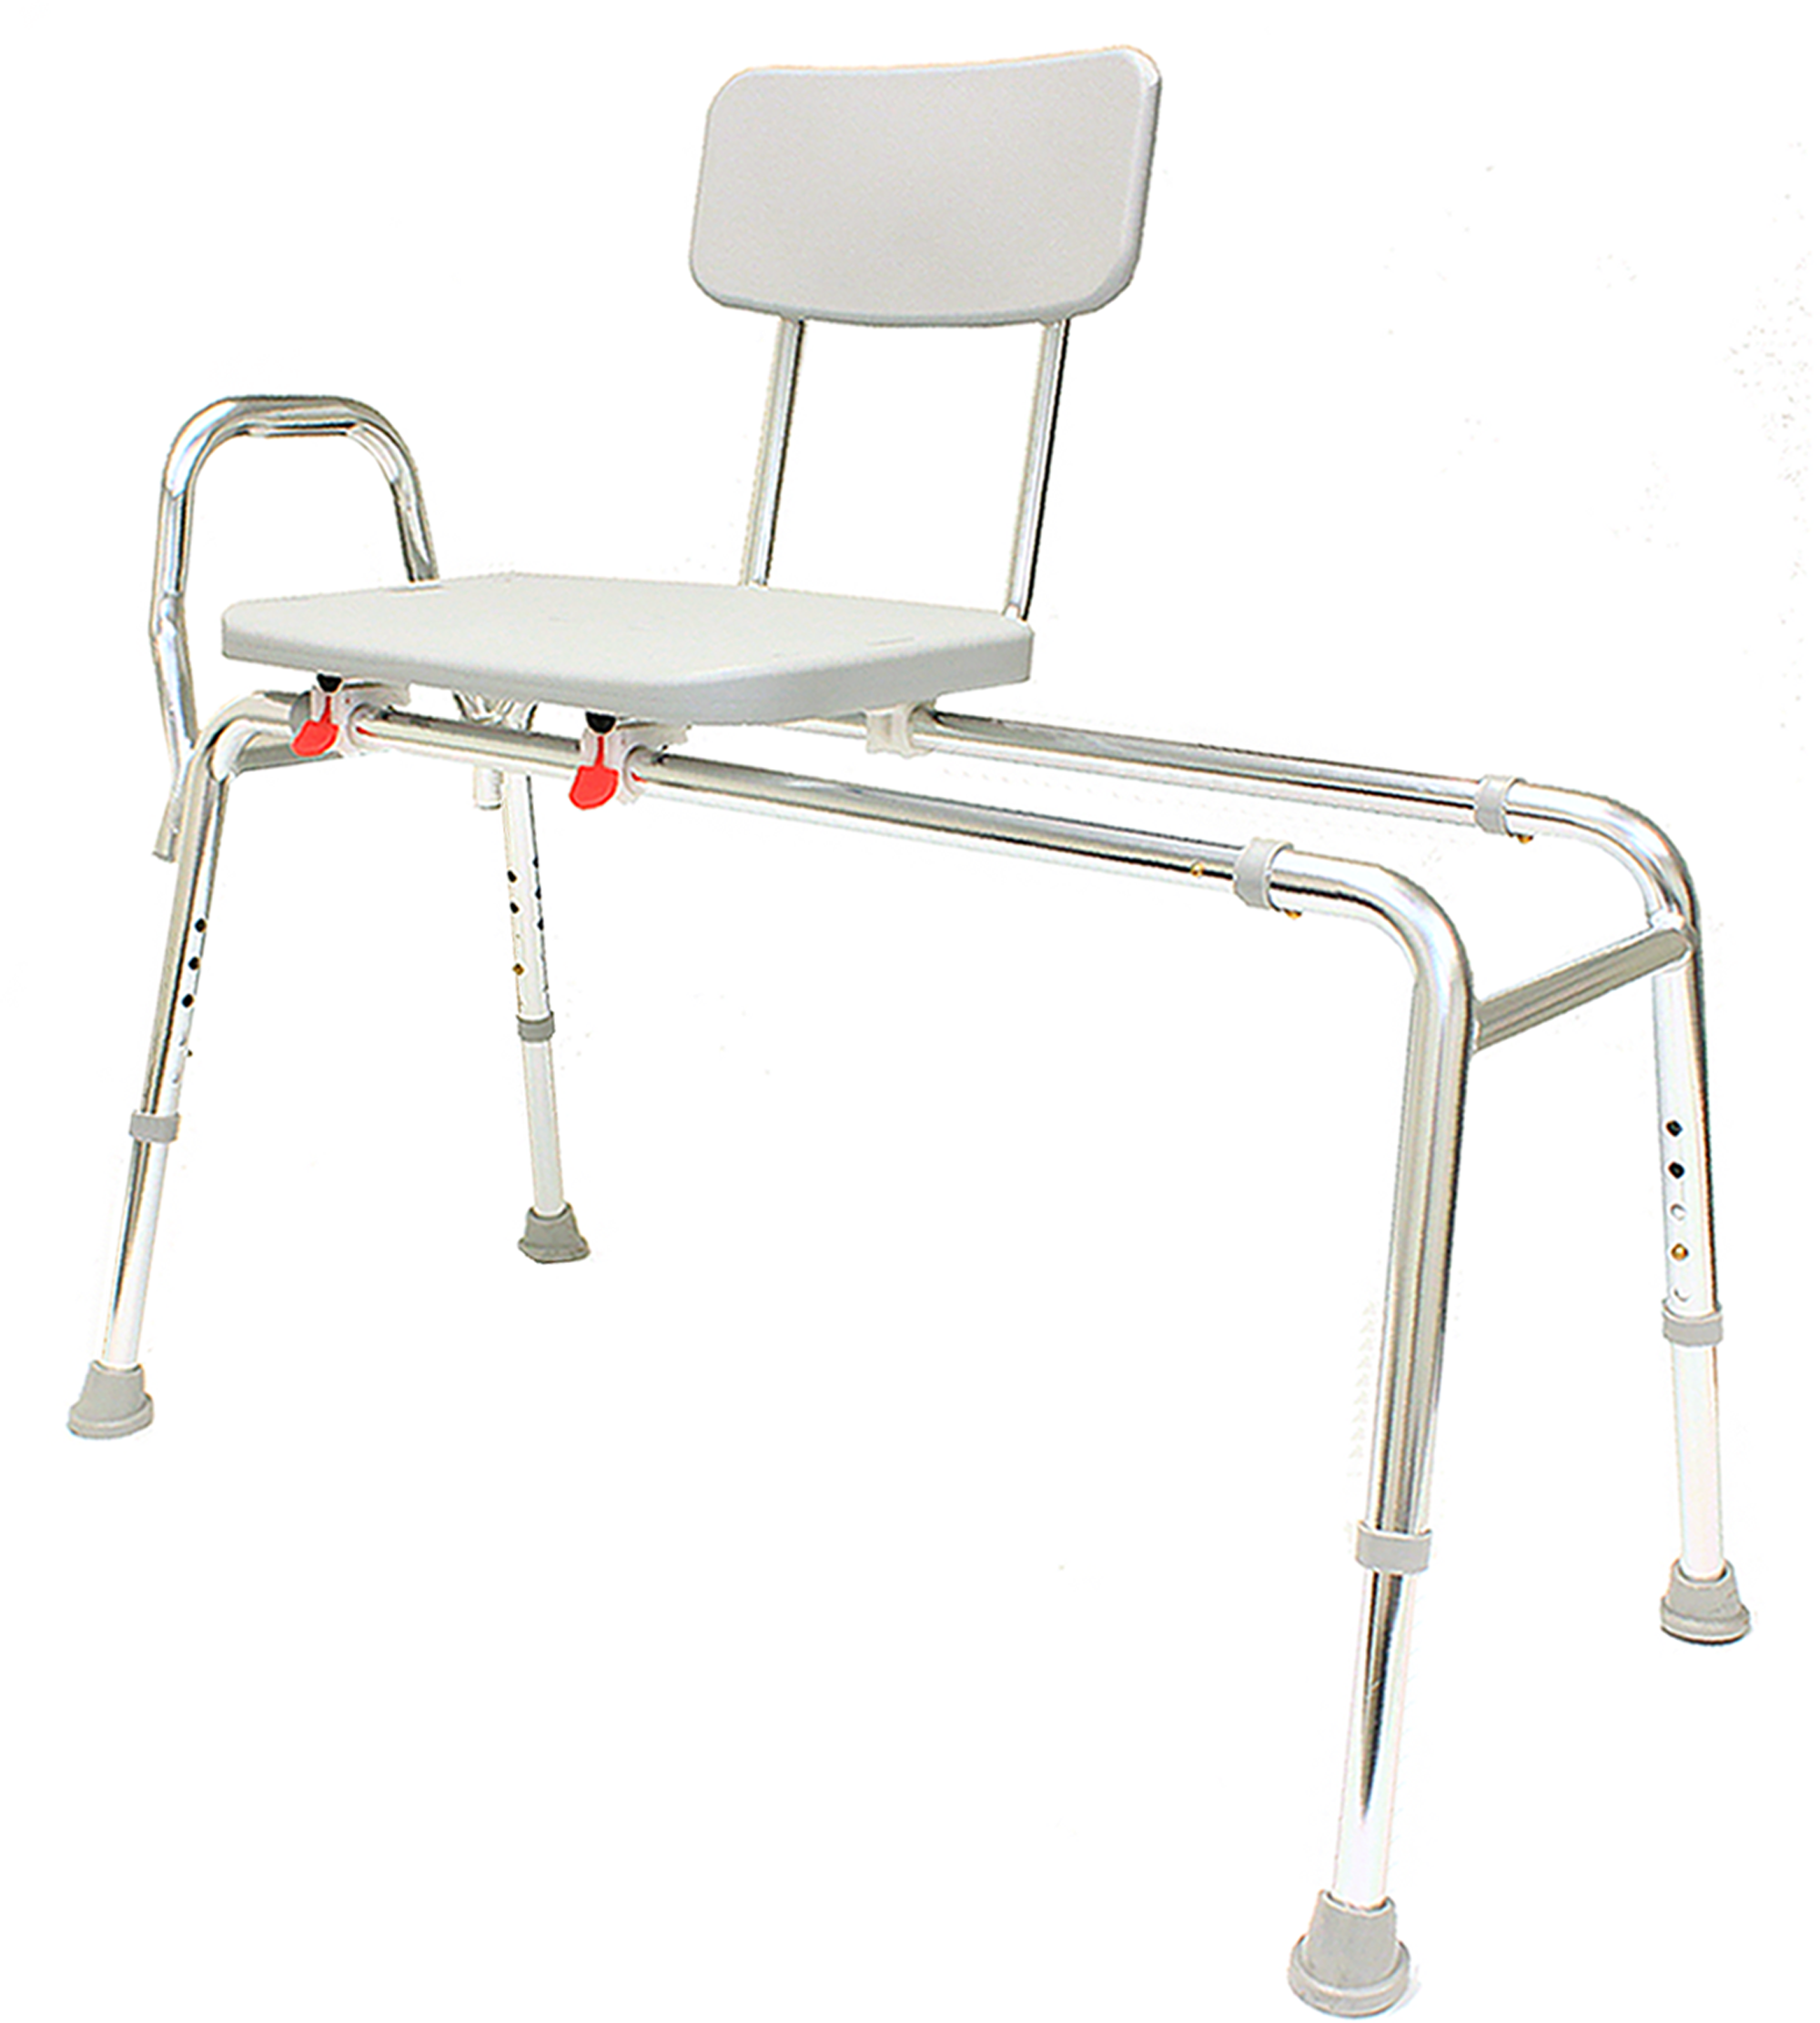 "Sliding Bath Transfer Bench (77291) - Extra Long (Base Length: 48"" - 49"") - Heavy-Duty Shower Bathtub Chair - Eagle Health Supplies"